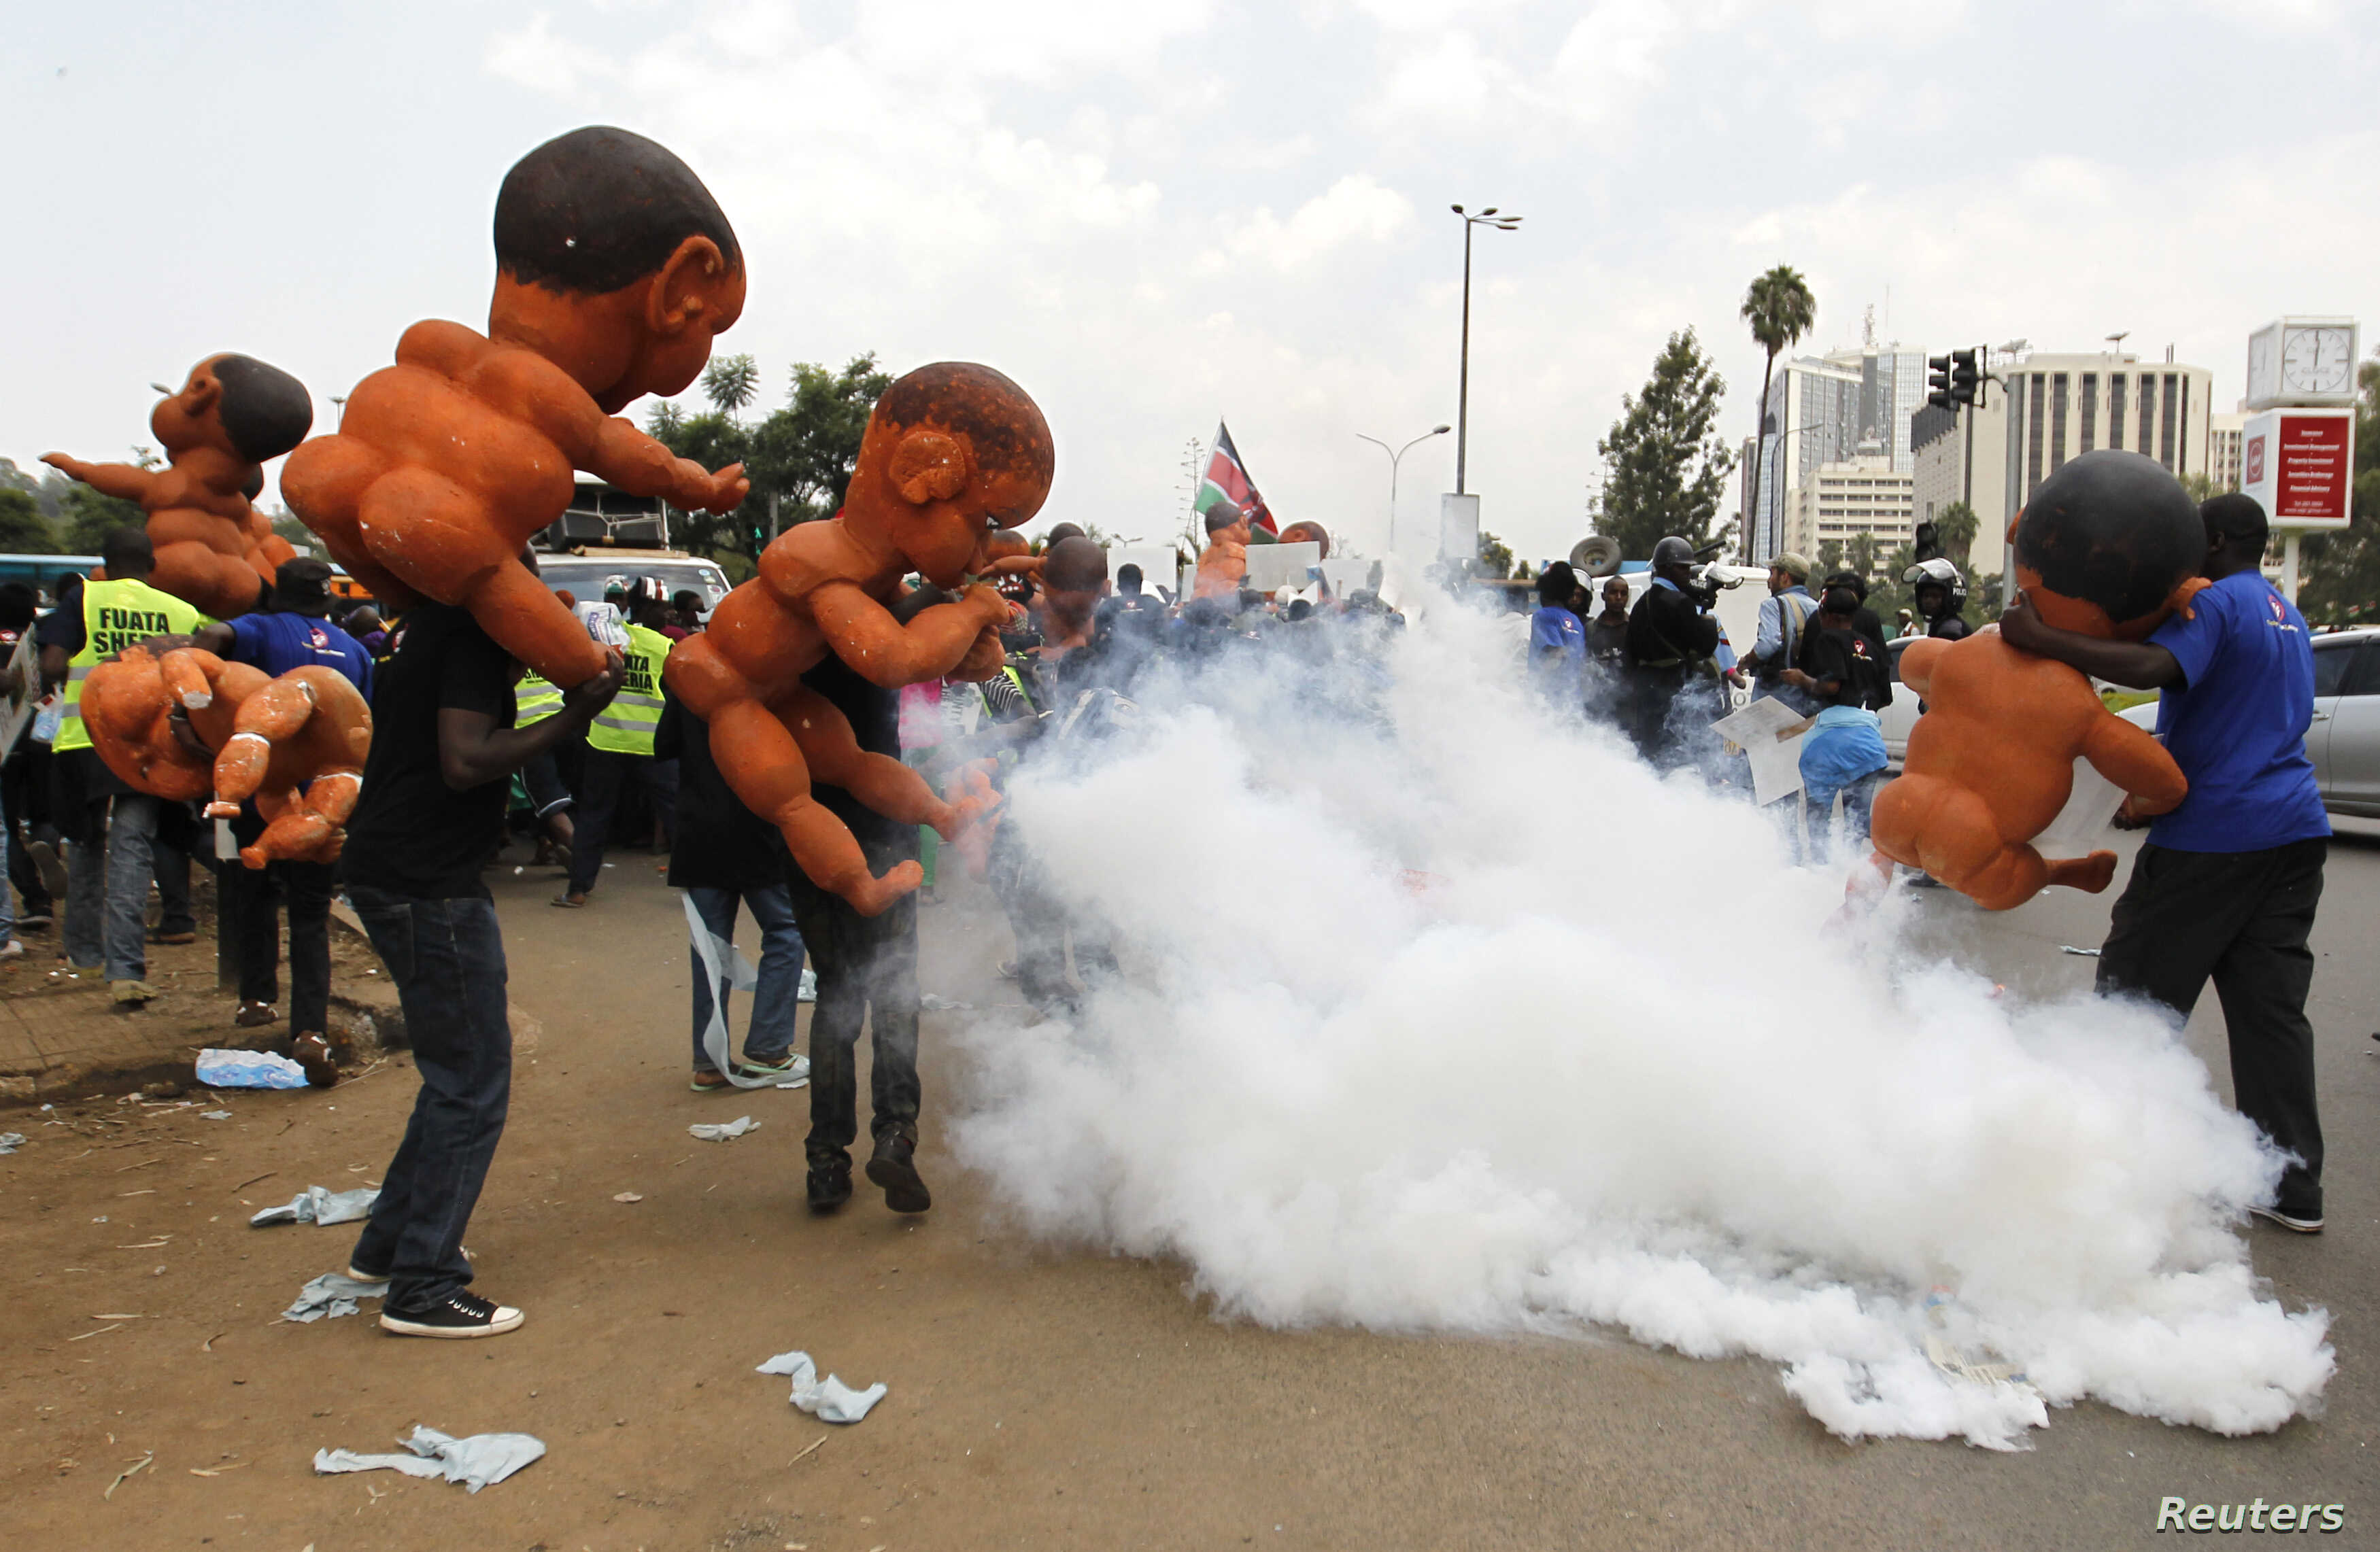 """Protesters carrying giant baby models run away after riot police fired tear gas to disperse them during a march dubbed """"Kenya ni Kwetu"""" in Kenya's capital Nairobi, Feb. 13, 2014."""